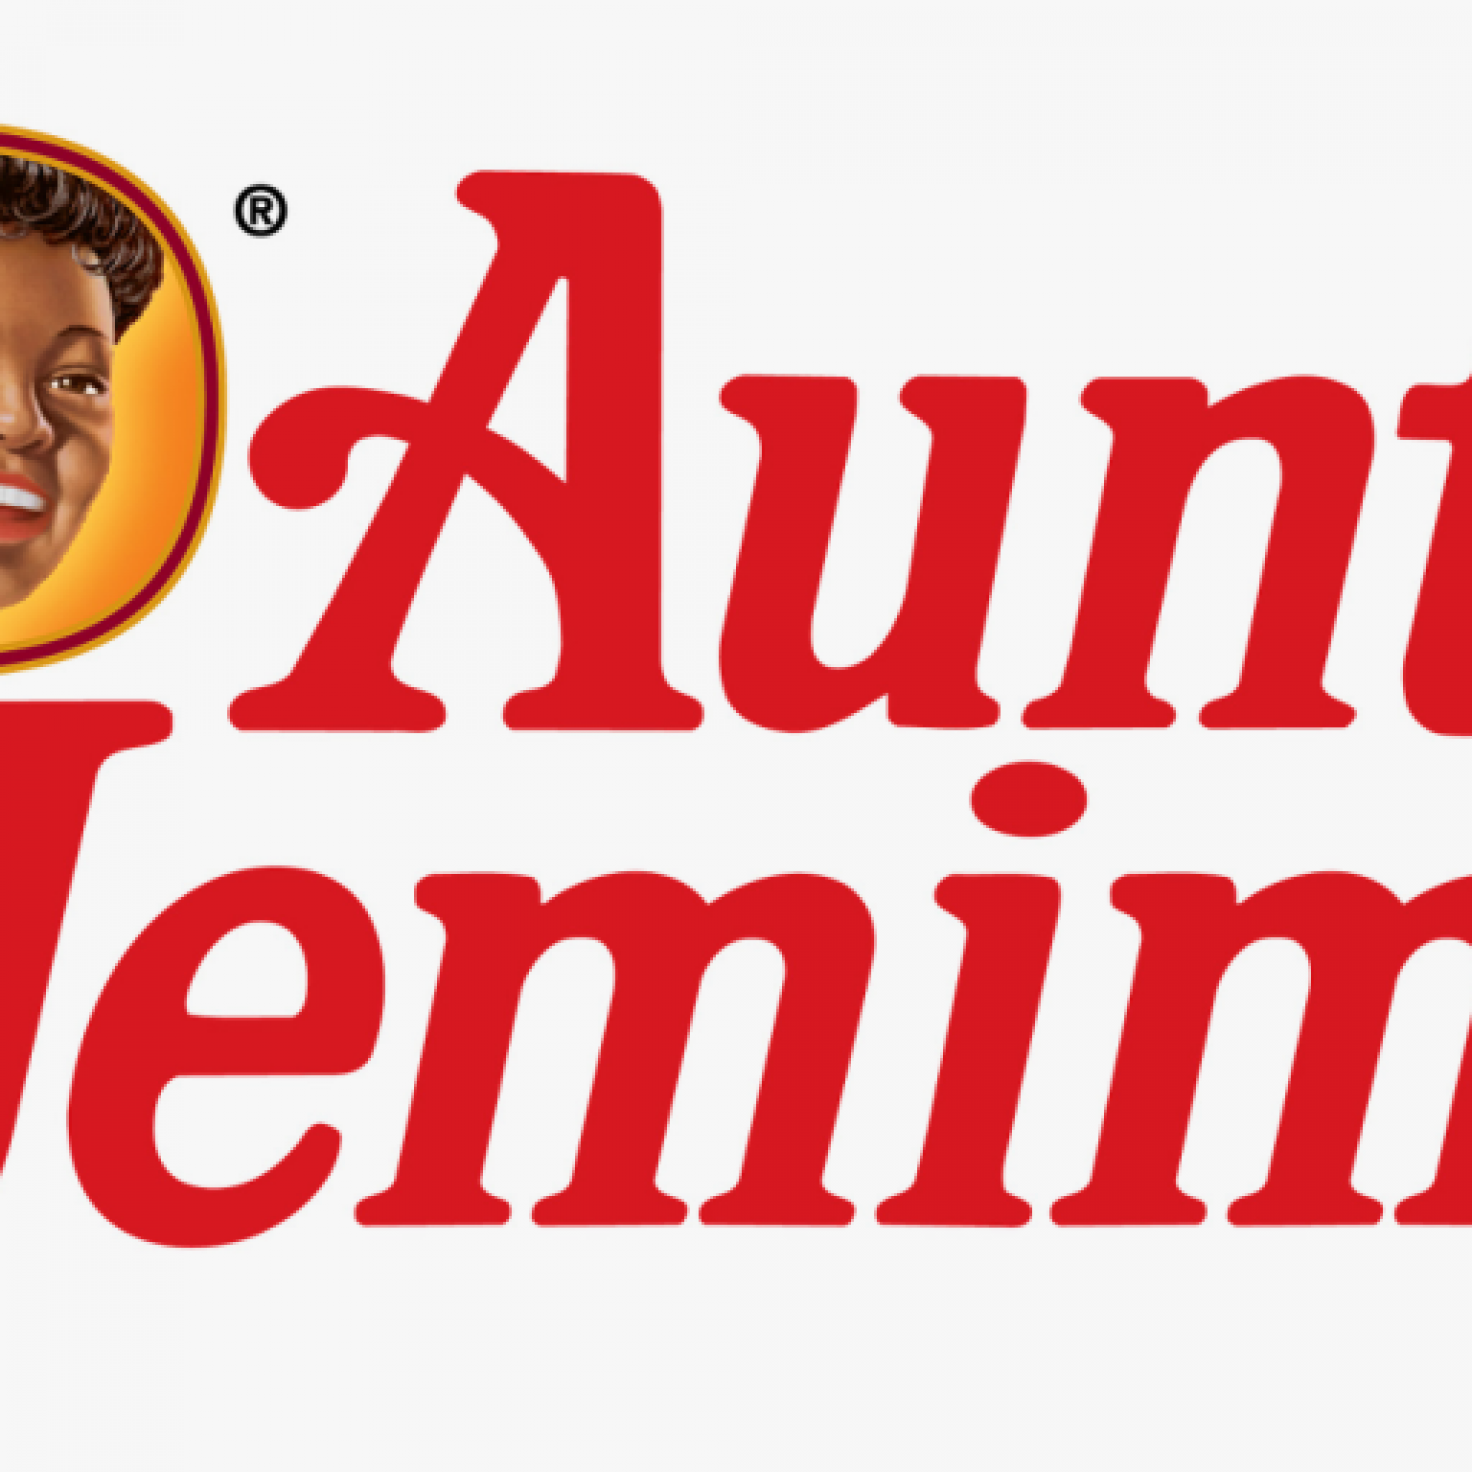 Aunt Jemima's Name And Likeness To Be Removed From Product Packaging